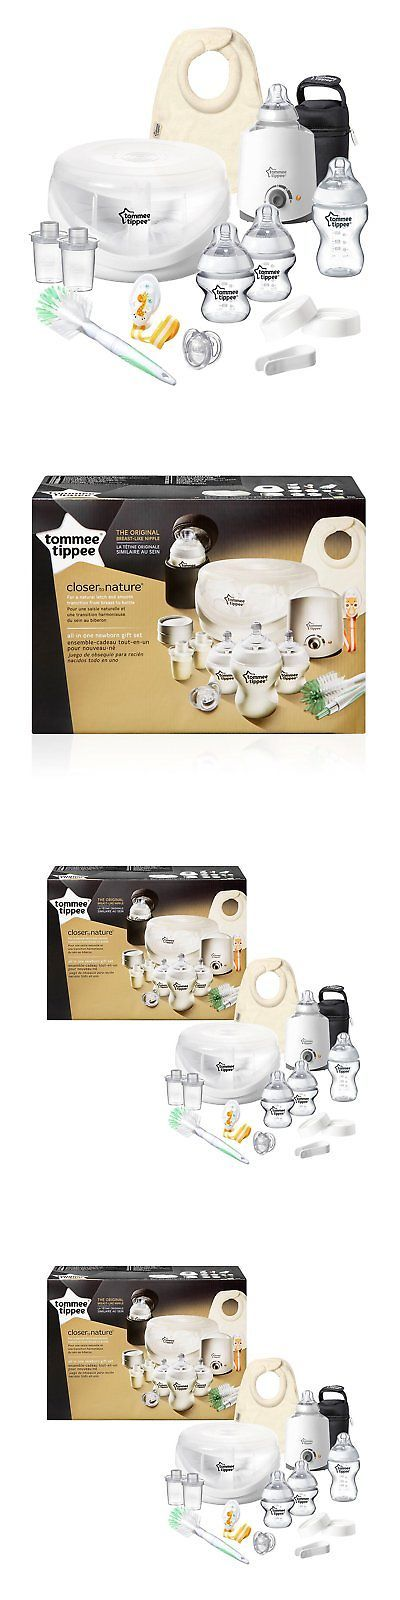 Baby Bottles 20402: Complete Starter Kit By Tommee Tippee Closer To Nature Bpa Free -> BUY IT NOW ONLY: $64.44 on eBay!